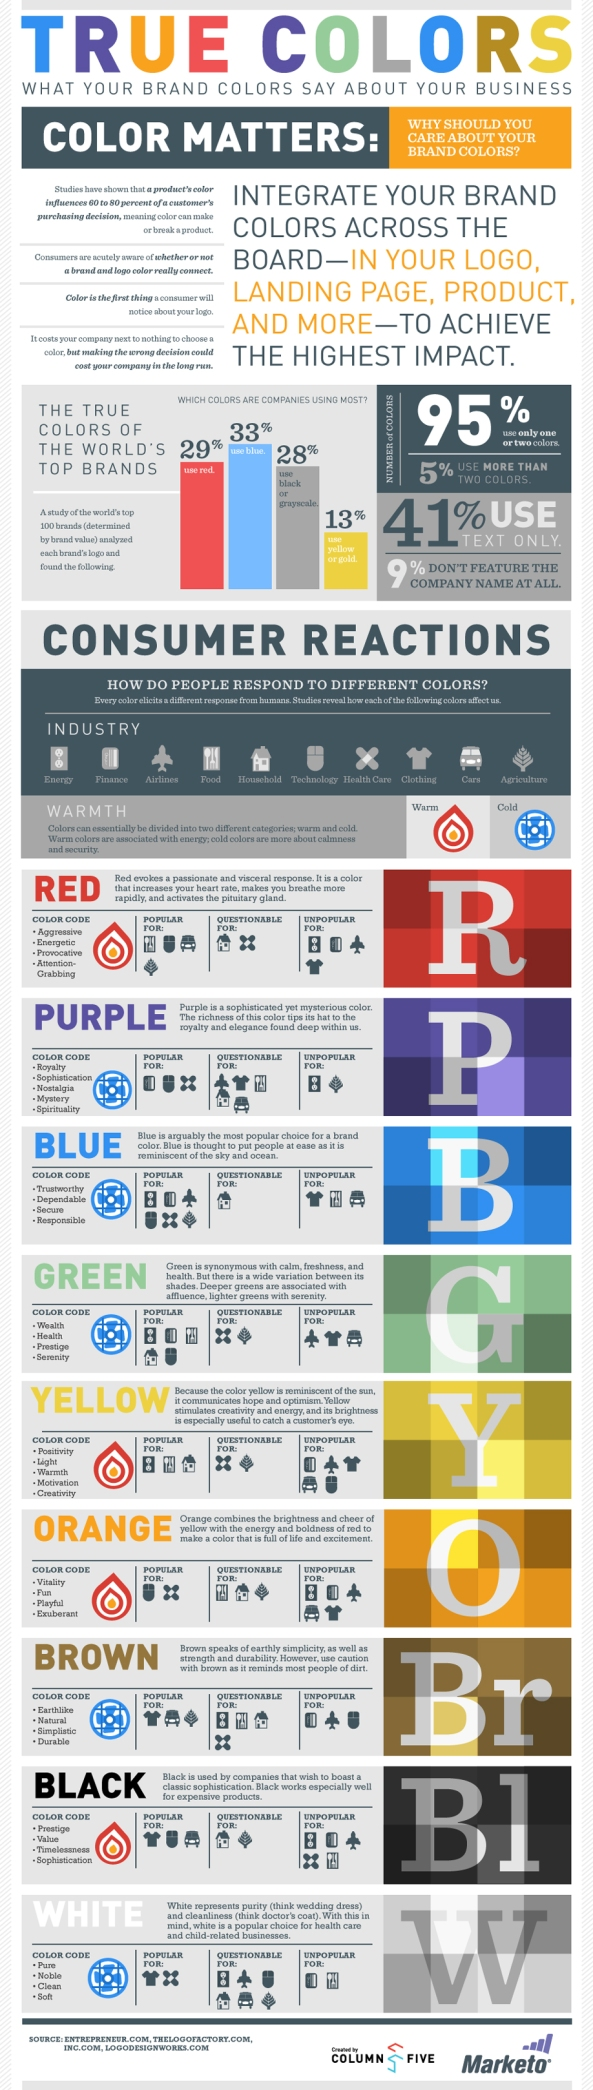 marketo-infographic-true-colors-what-your-brand-colors-say-about-your-business